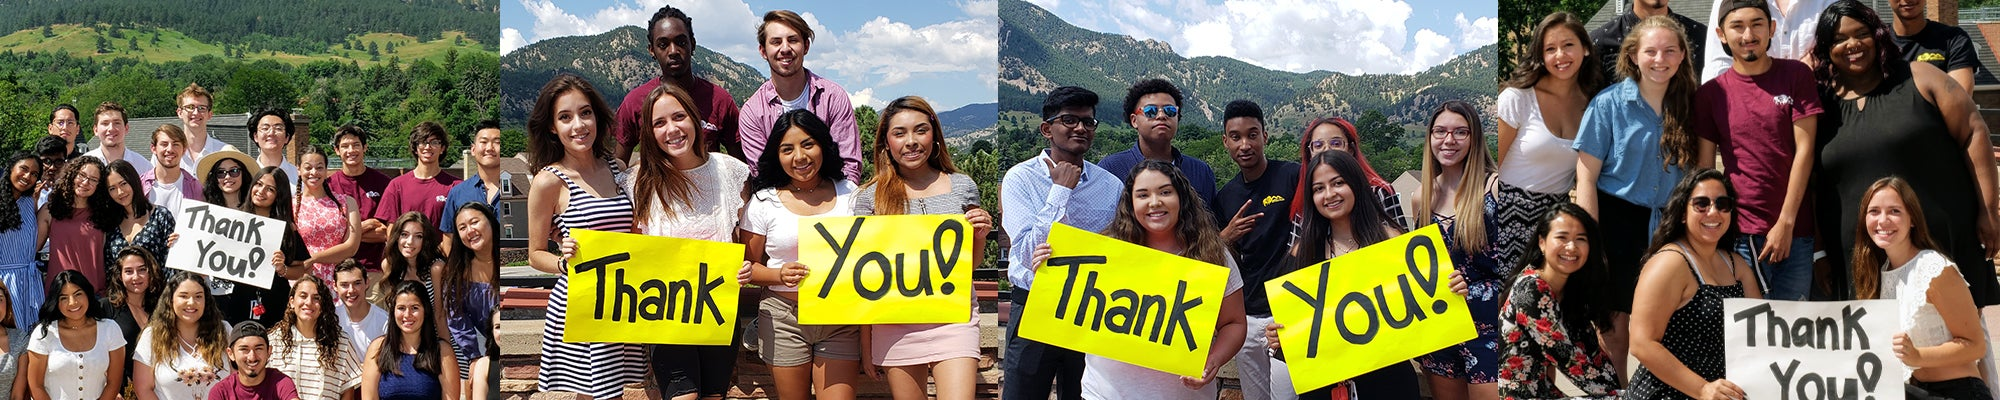 PEAC 2019 Cohort Thanking Their Donors